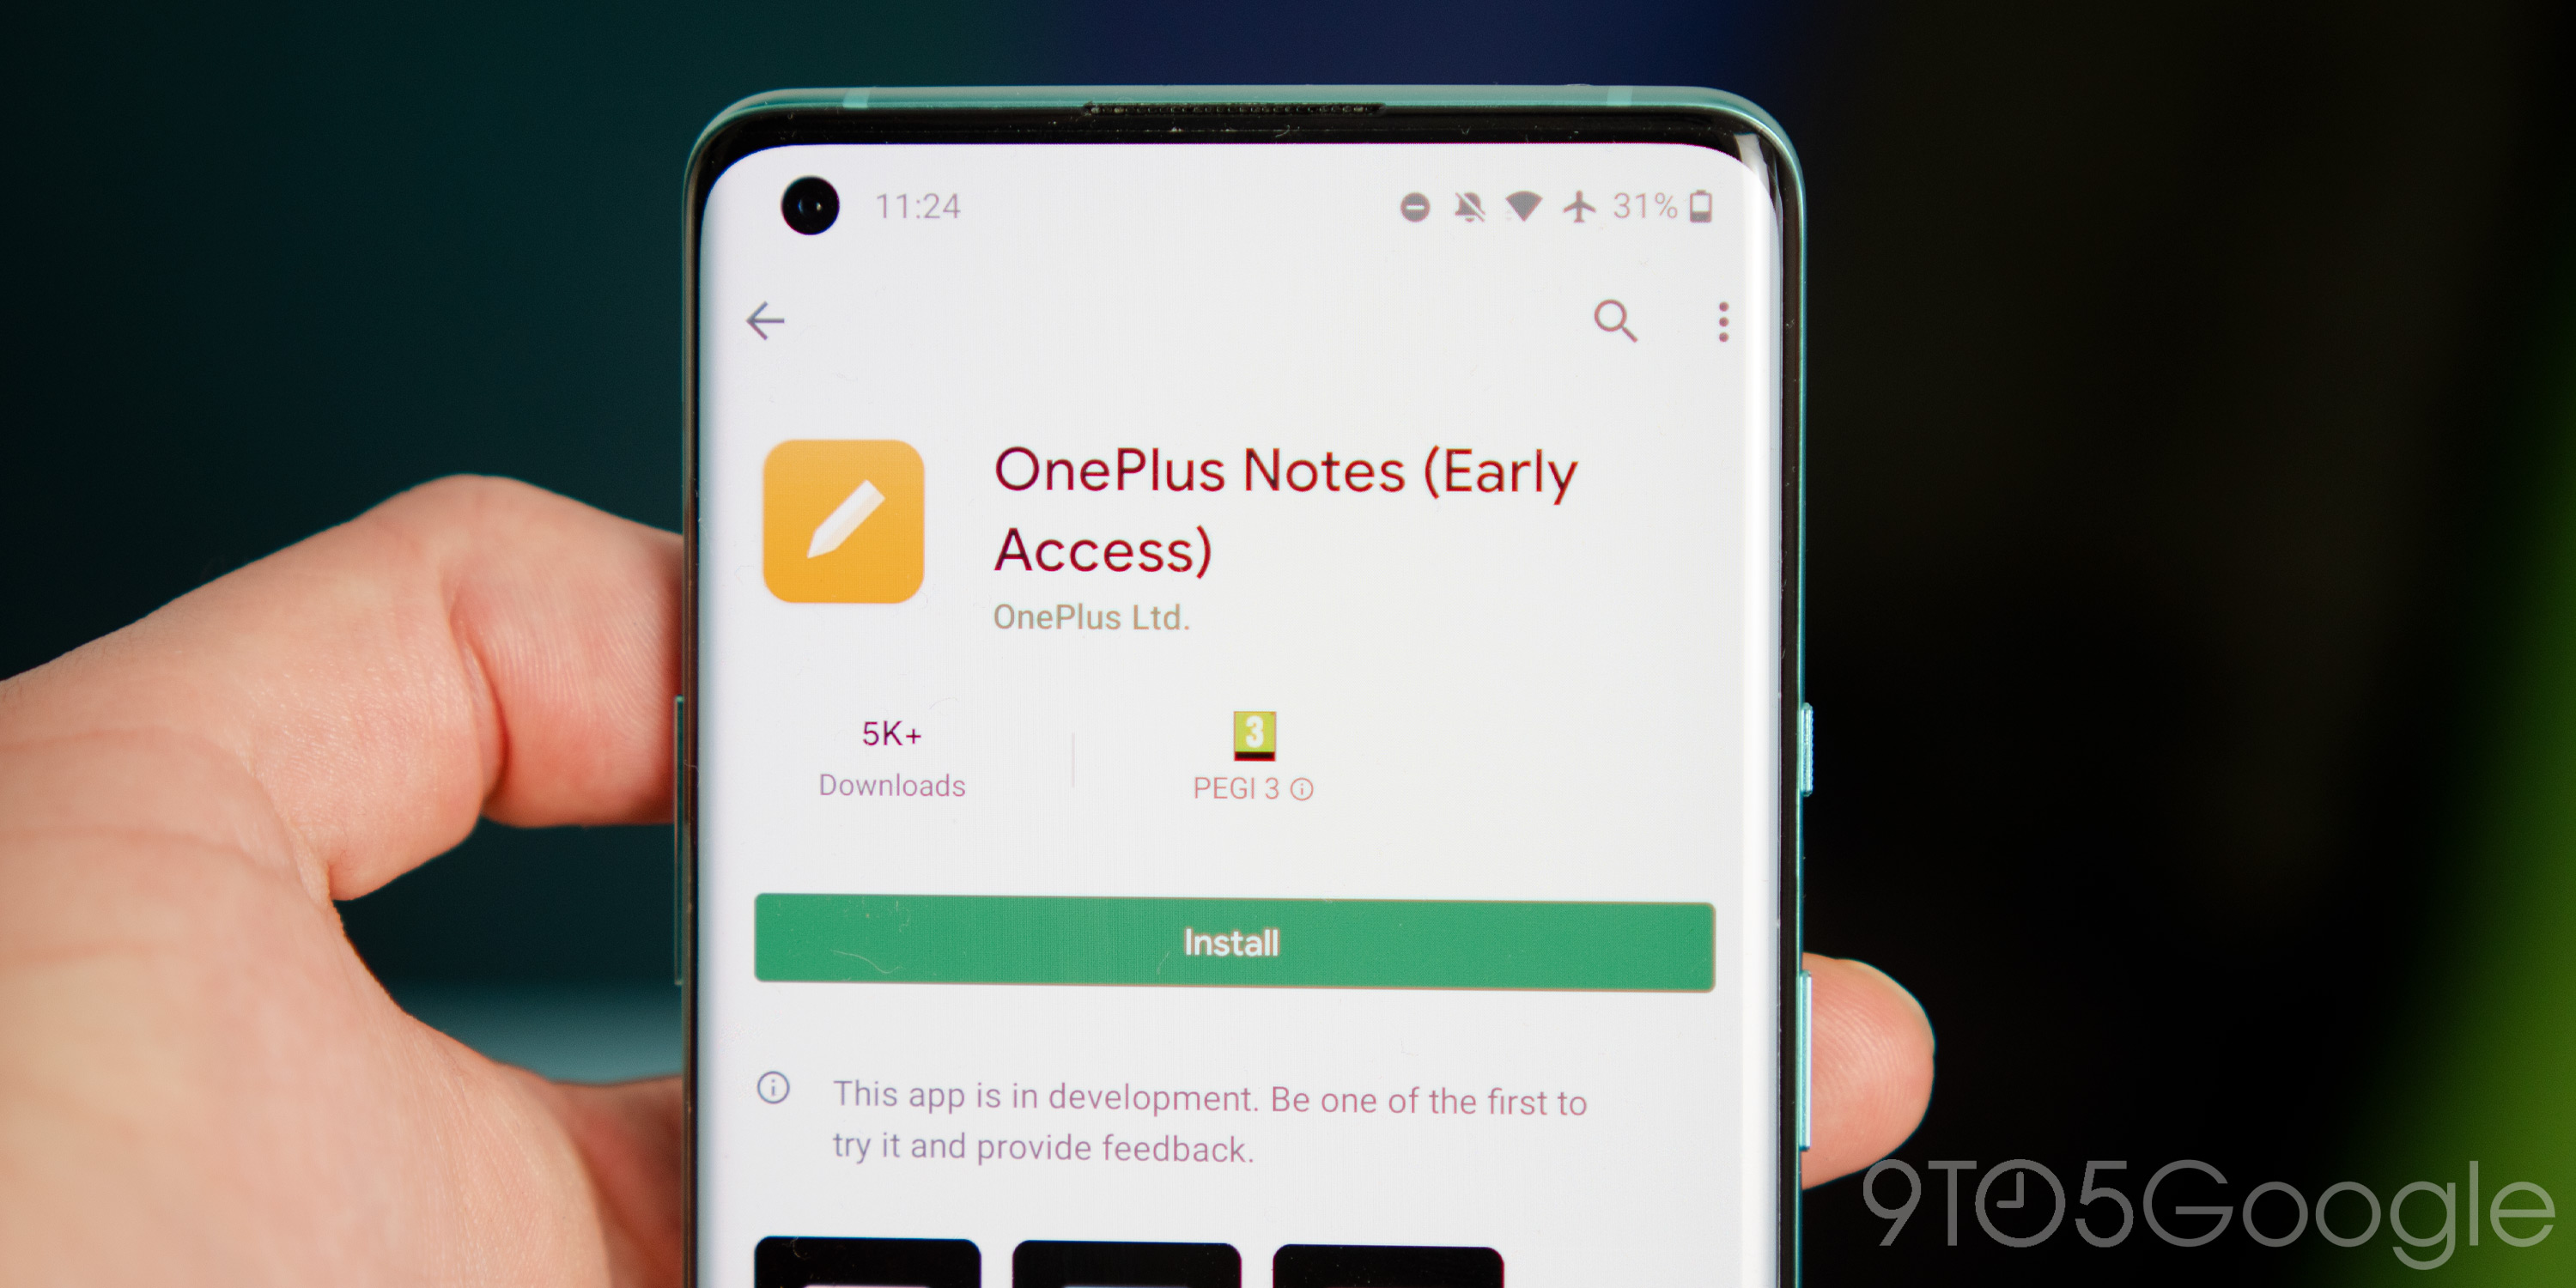 OnePlus Notes app arrives on Play Store in early access w/ OxygenOS 11 design - 9to5Google